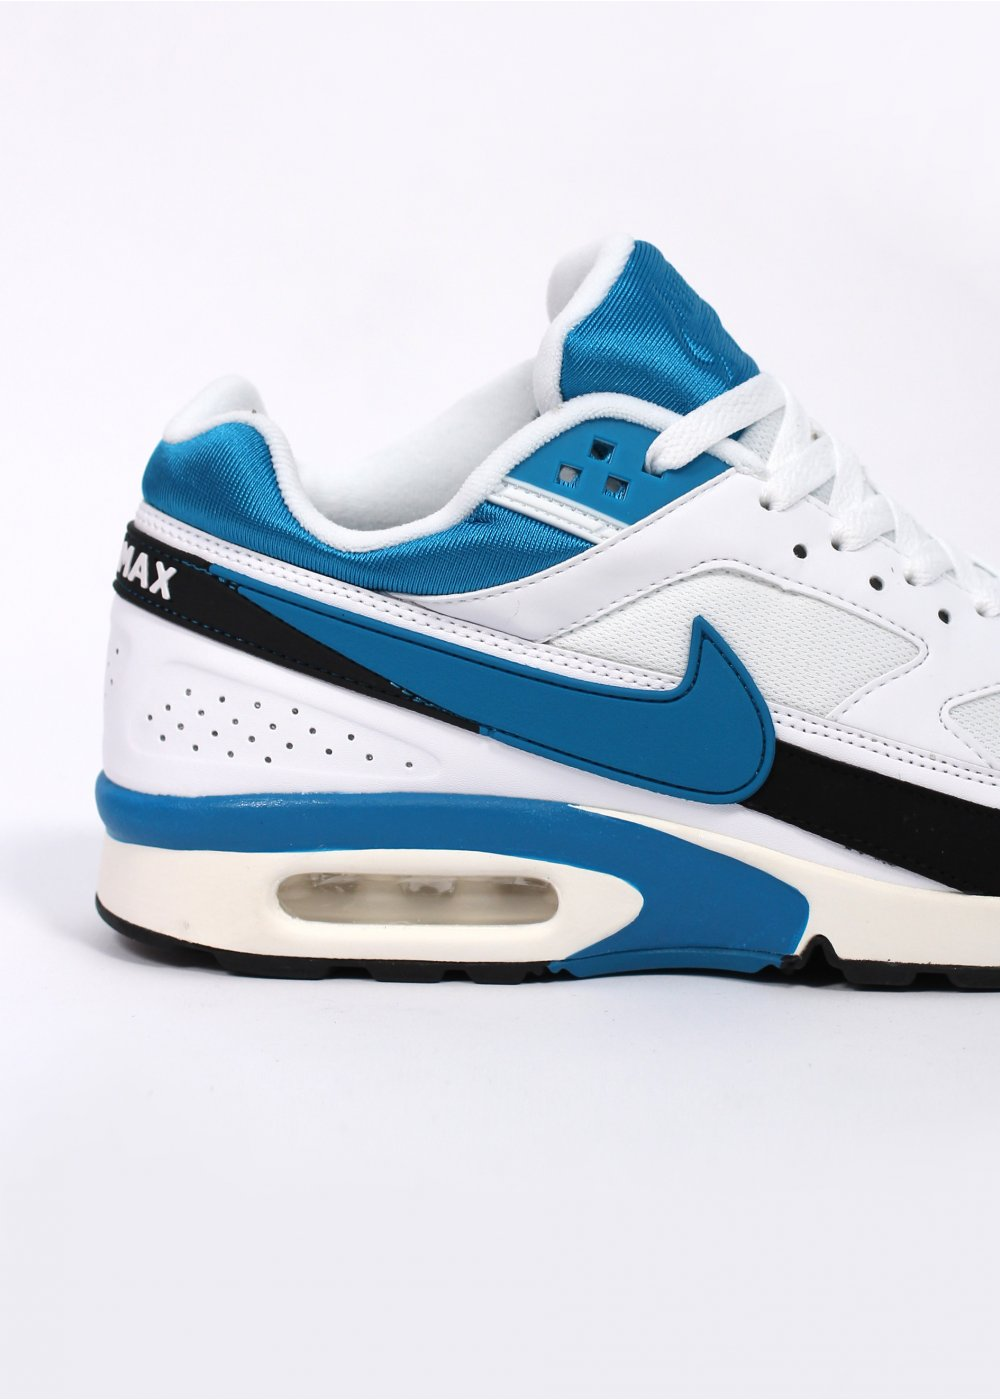 Nike Footwear Air Classic BW Trainers Imperial Blue Black Sail White